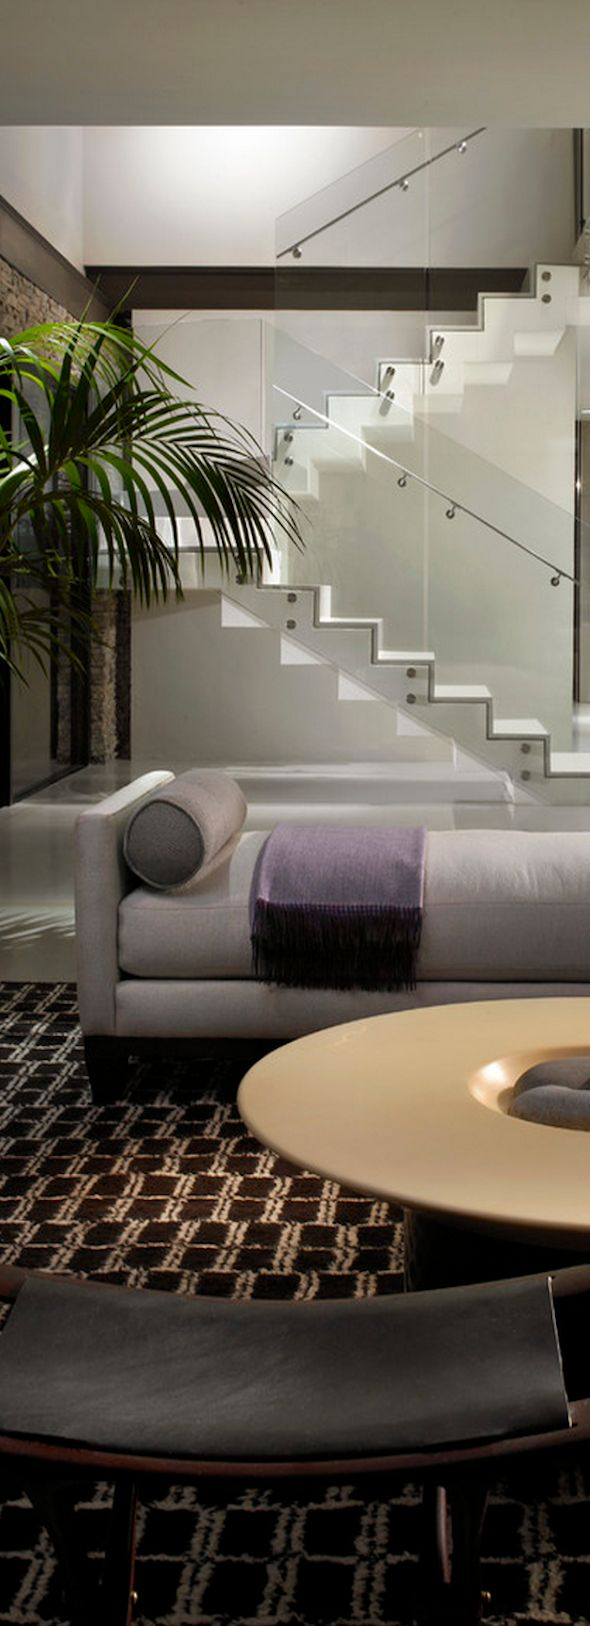 best interiores images on pinterest home ideas my house and